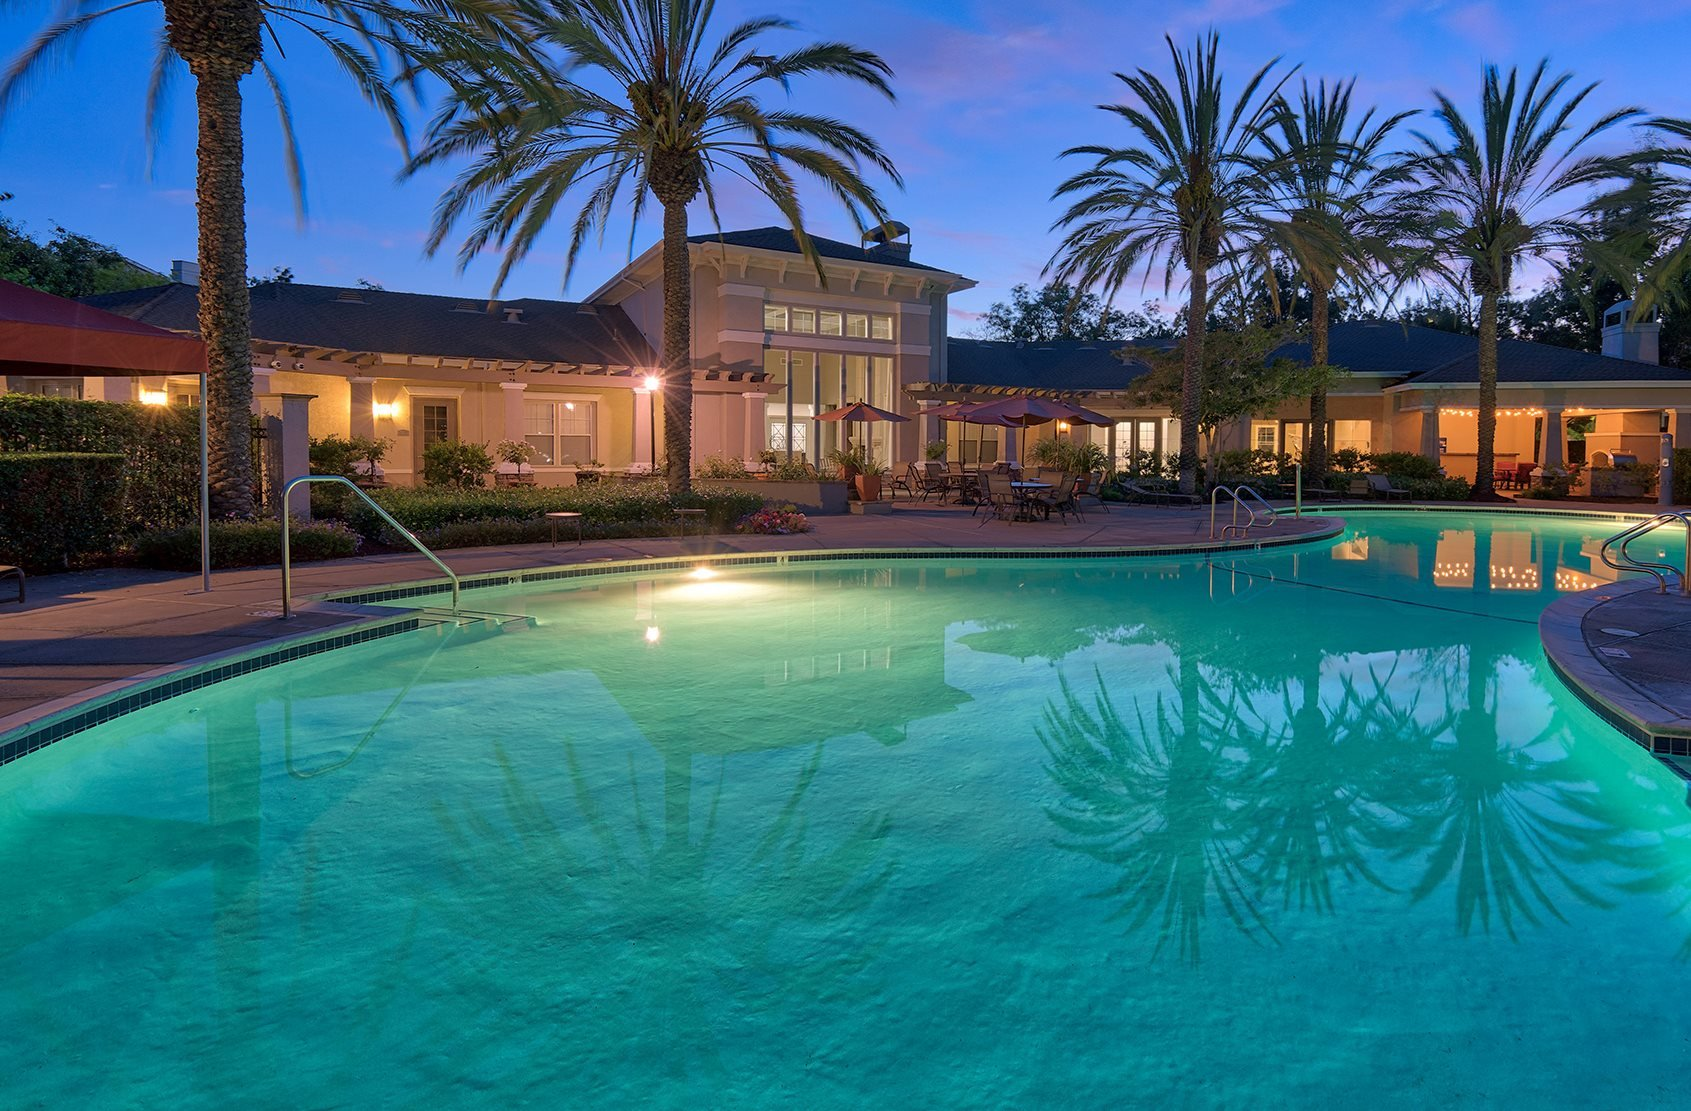 Pool at twilight at The Estates at Park Place, Fremont, California